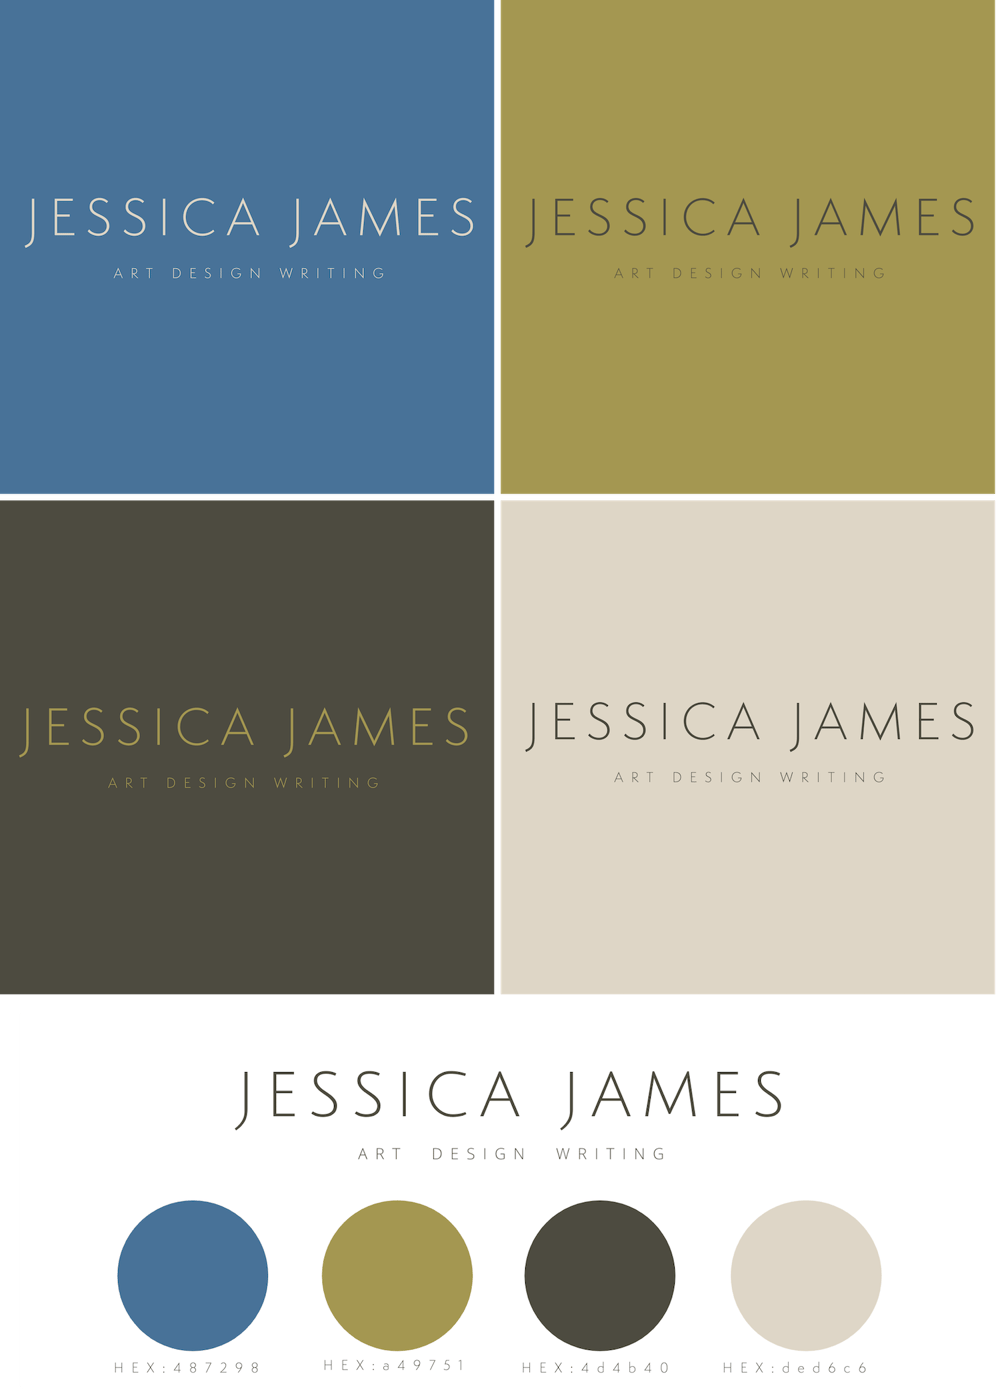 Jessica James - Personal Rebranding - image 1 - student project